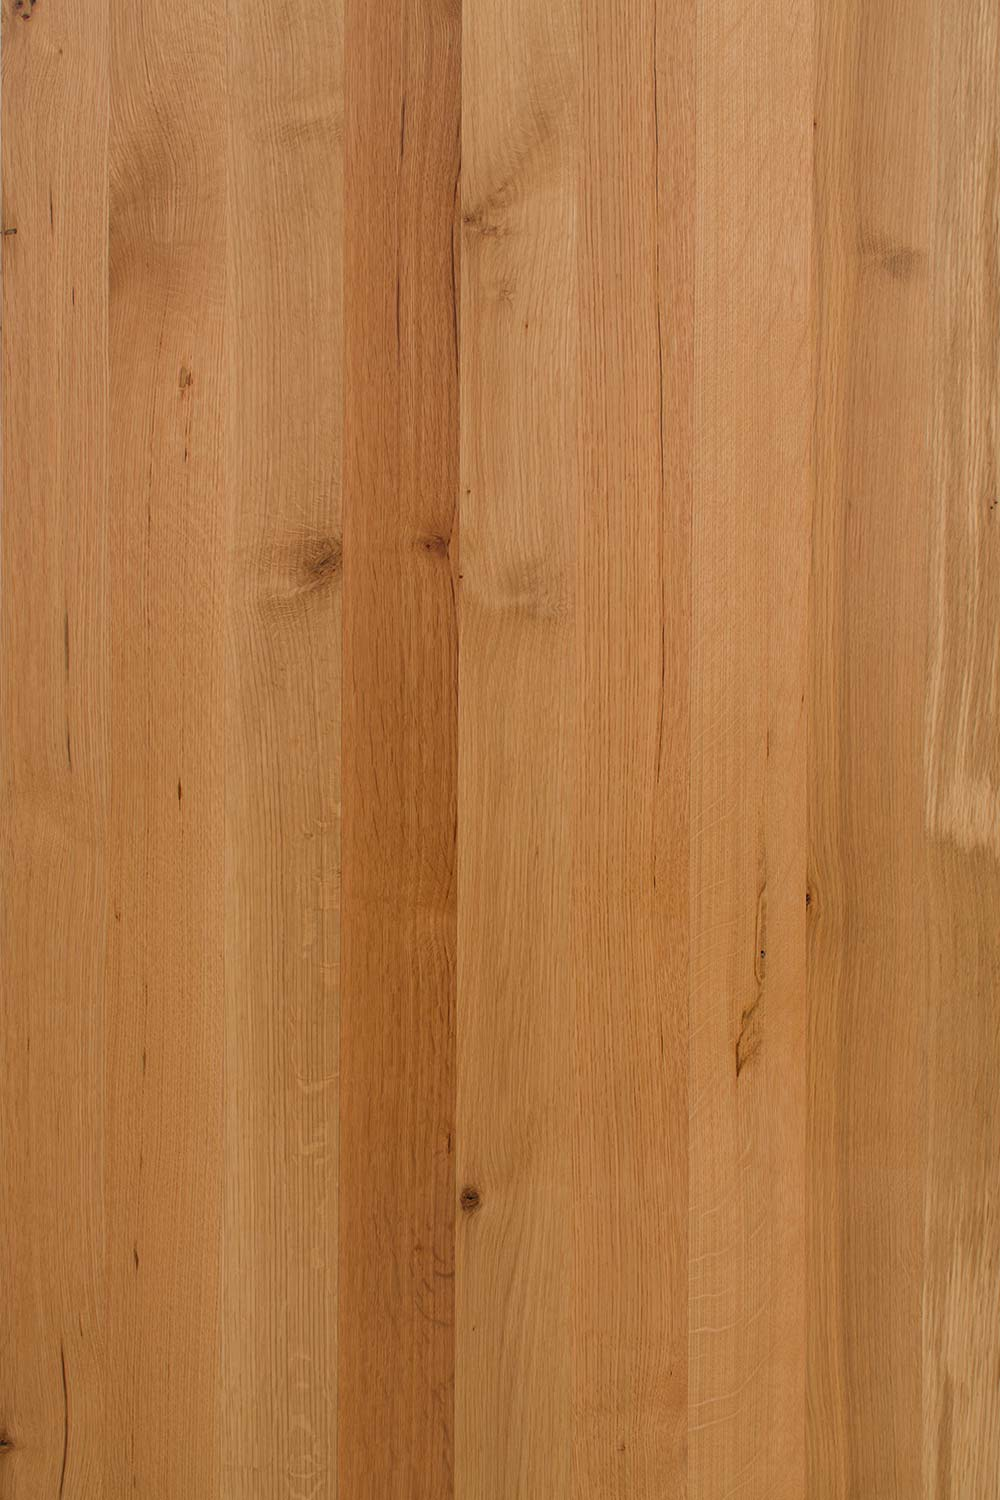 Rift & Quartered Character White Oak